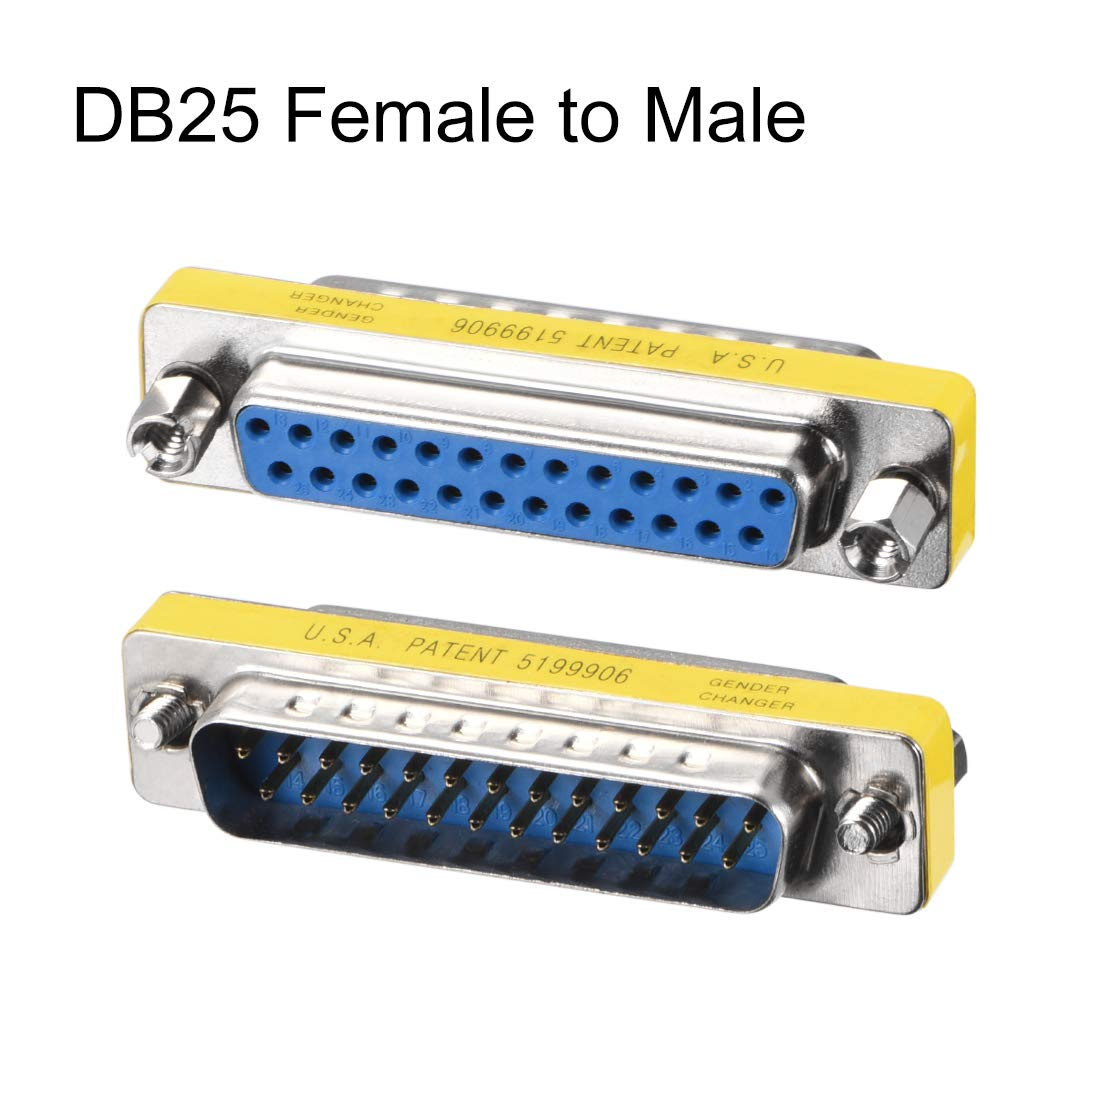 uxcell DB25 VGA Gender Changer 25 Pin Female to Male 2-row Mini Gender Changer Coupler Adapter Connector for Serial Applications Blue Pack of 10